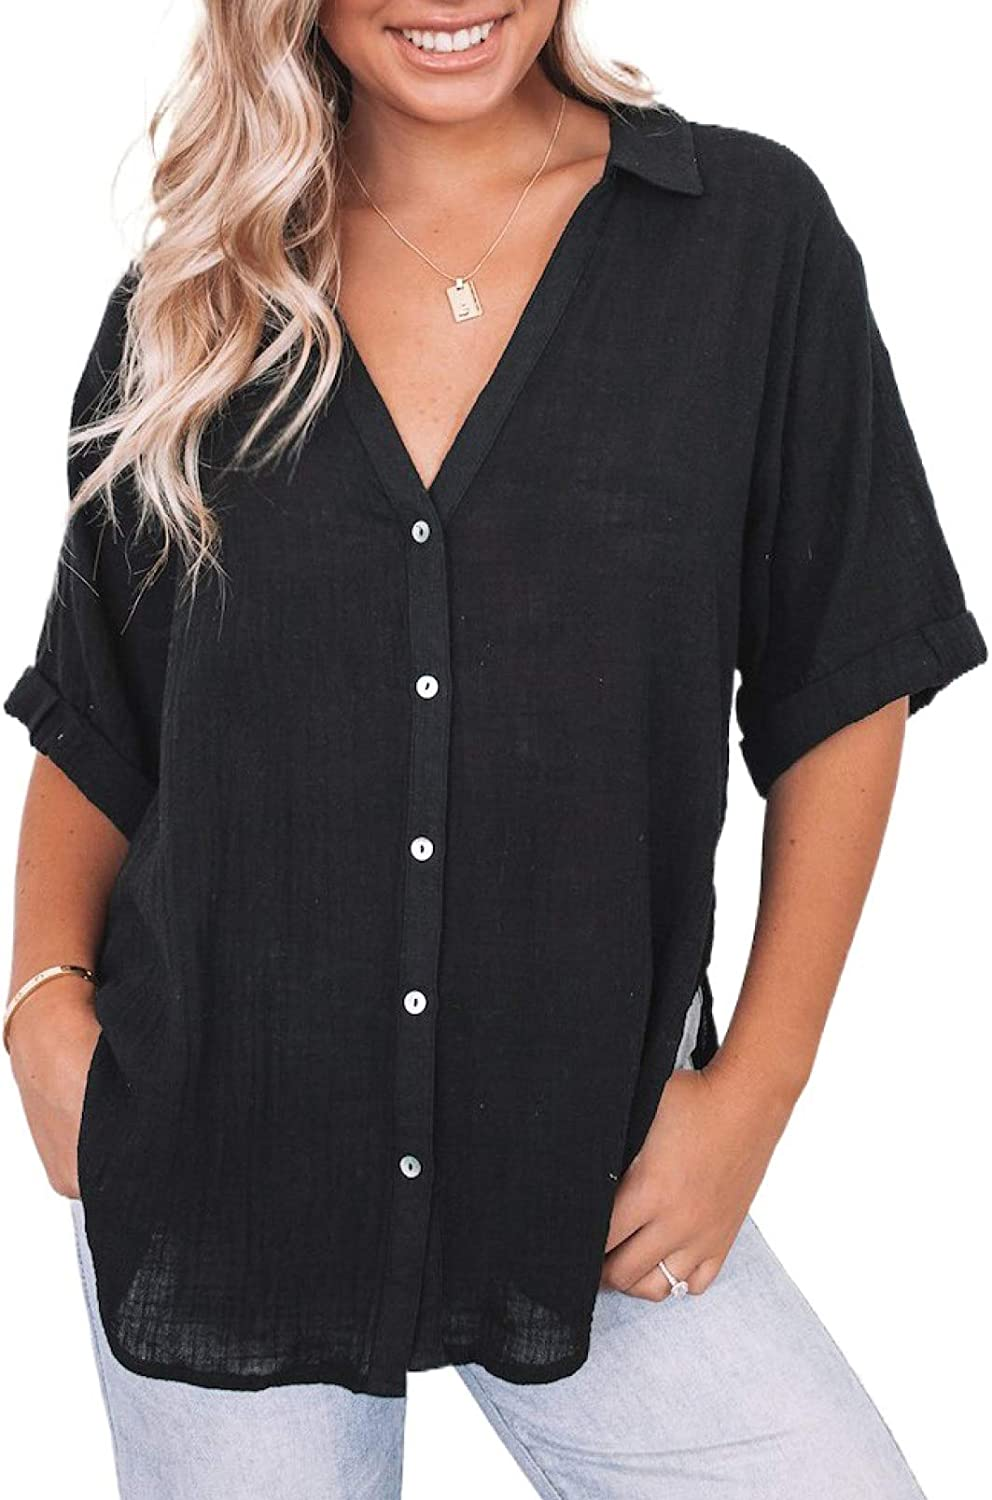 Ecrocoo Women's V Neck Short Sleeve Blouses Casual Summer Solid Color Button Down Shirts Tops